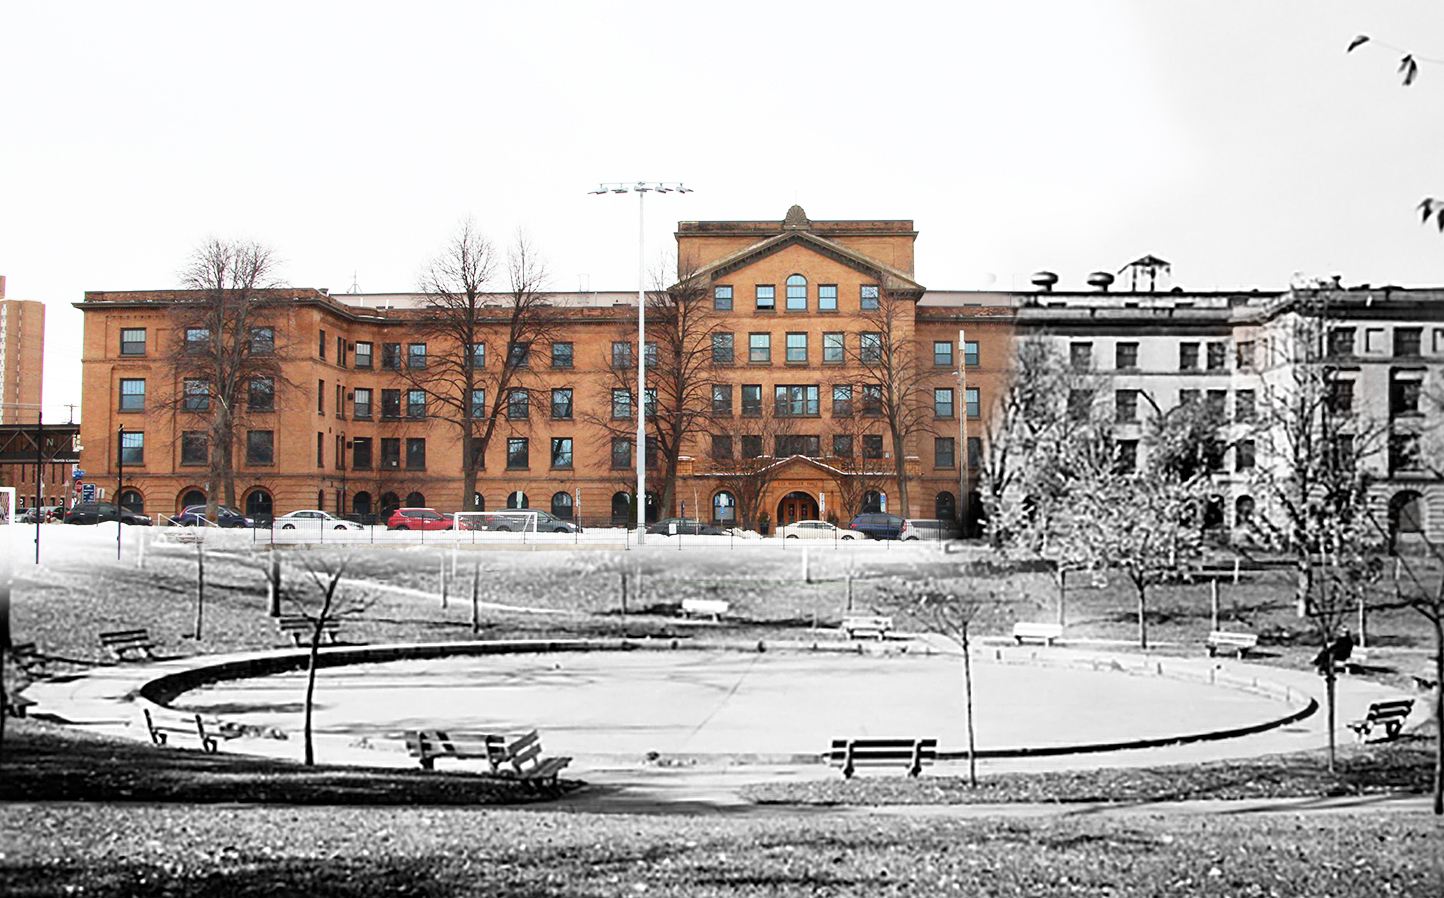 Digital photo art by Madi Olejnicak of Asbury Hospital 1920's. Art titled Yesterday, today, and forever.